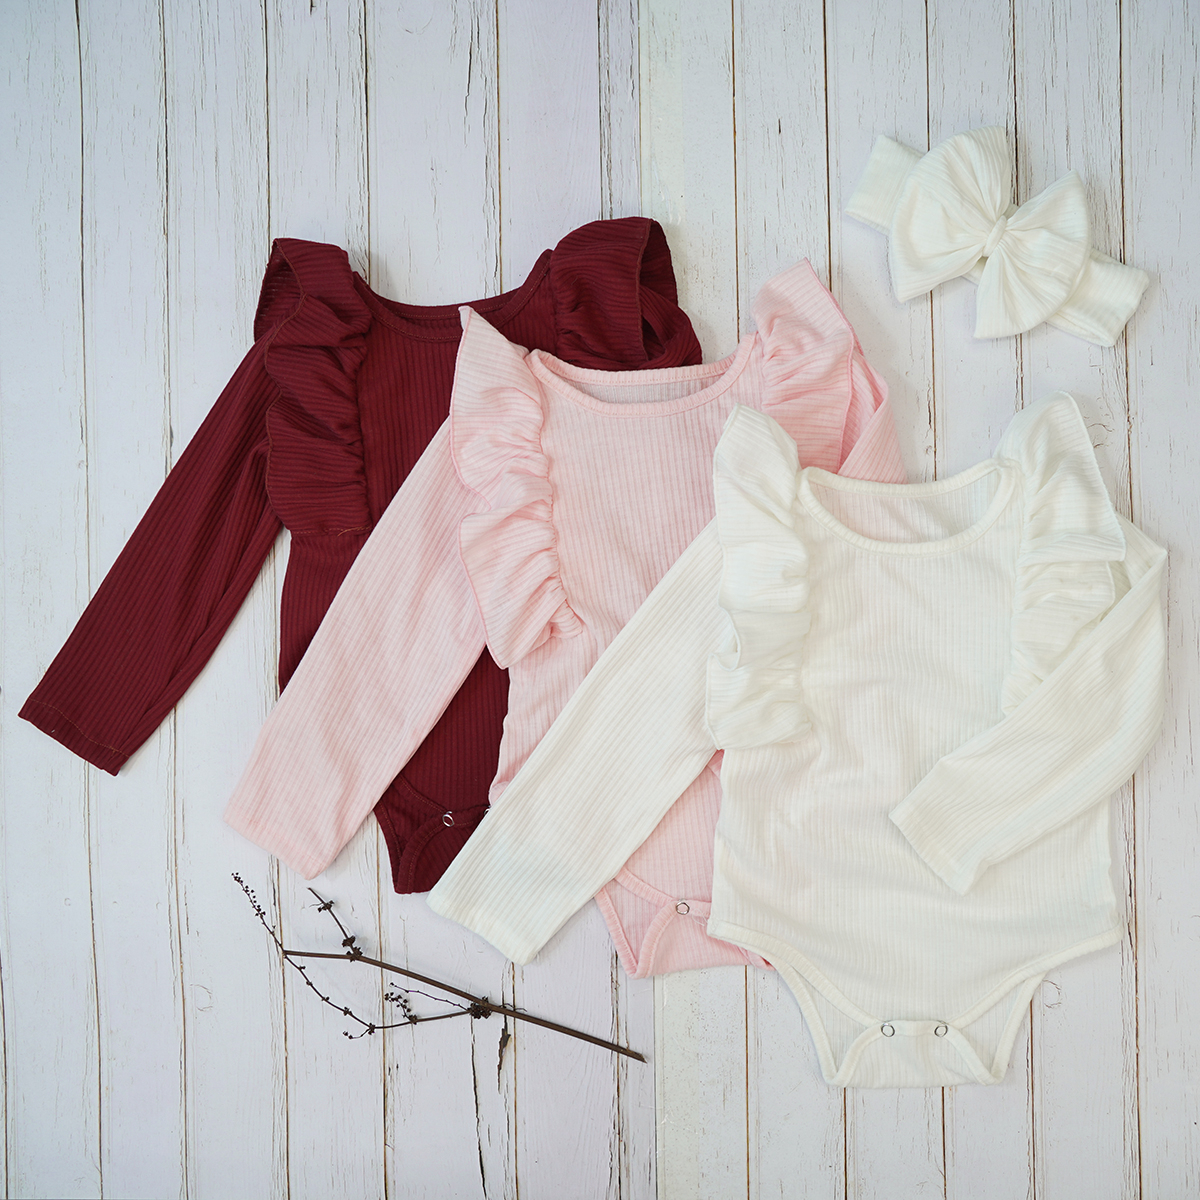 New Baby Girls Autumn Rompers Long Ruffle Sleeve Headband Set Body Suit Winter Pink White Tops Clothes For Children Kids Toddler